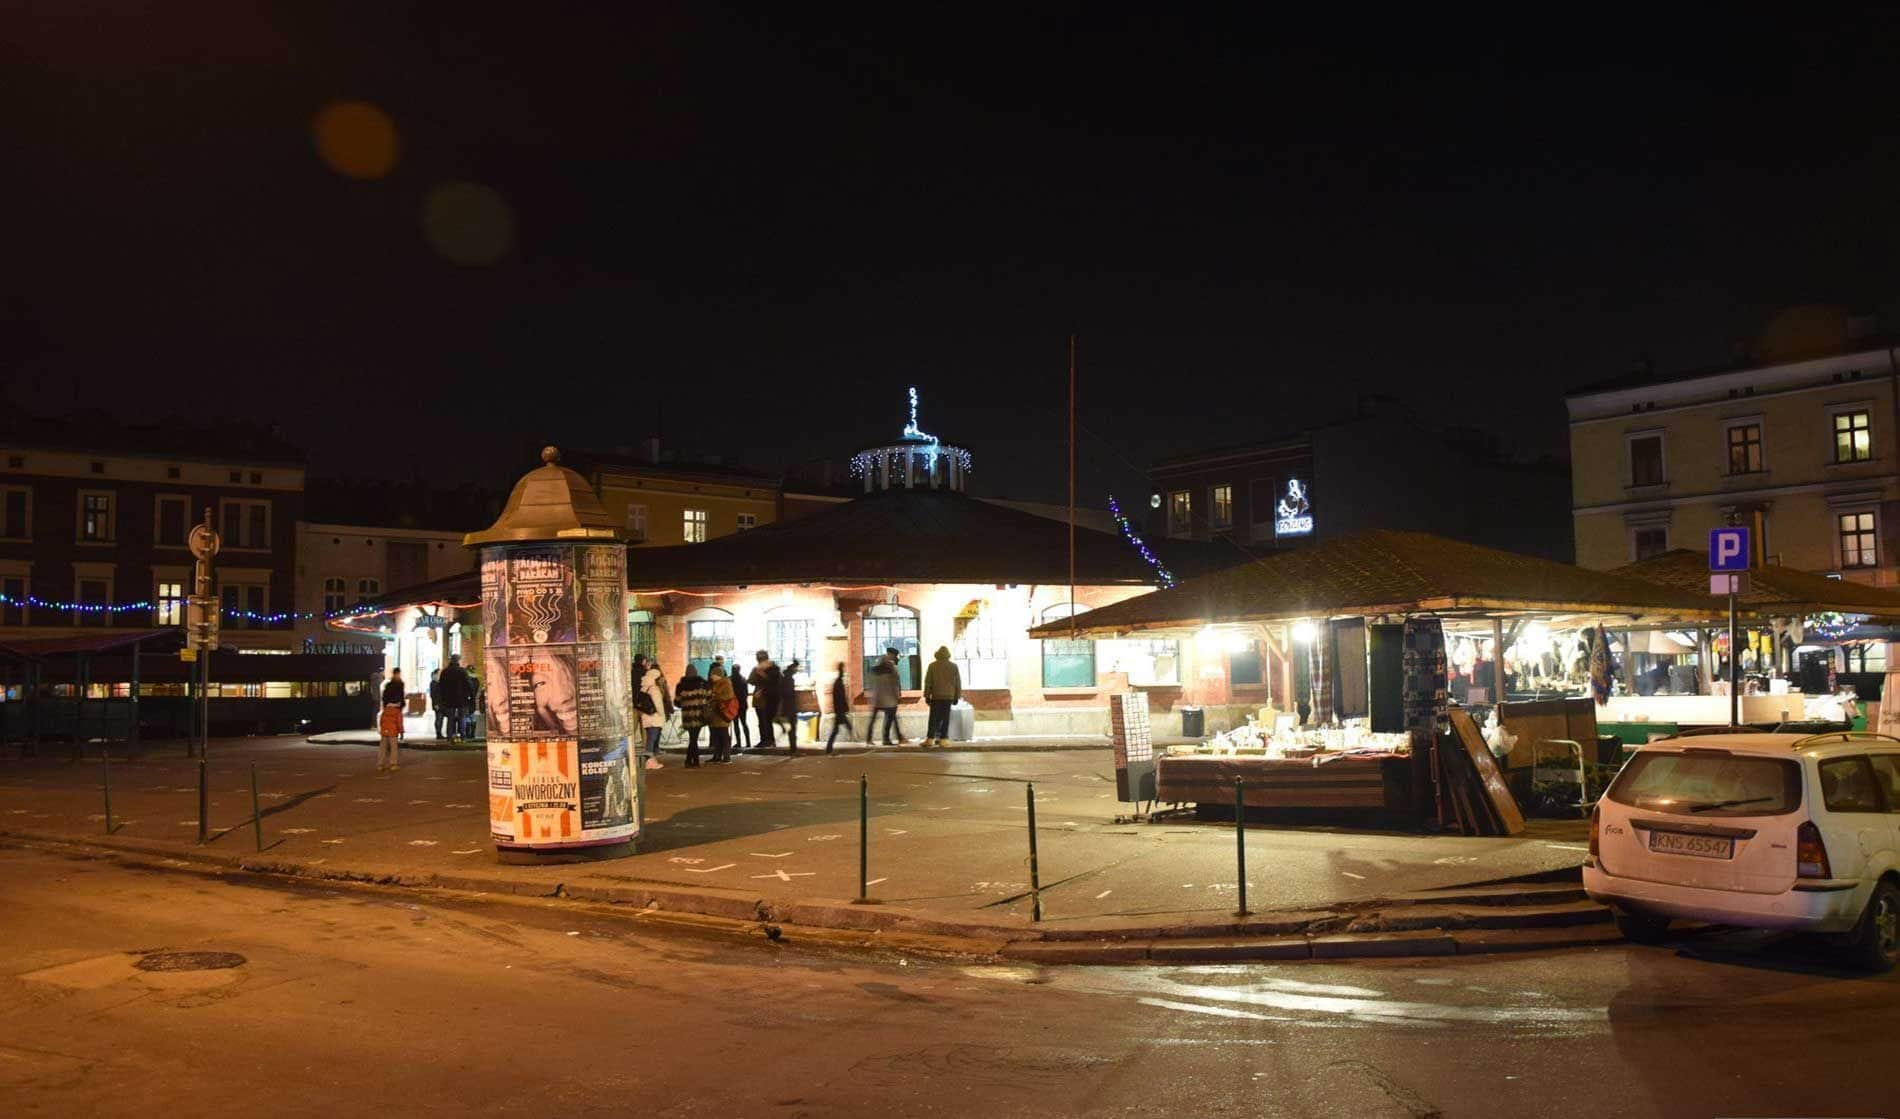 Street food in Plac Nowy a Cracovia